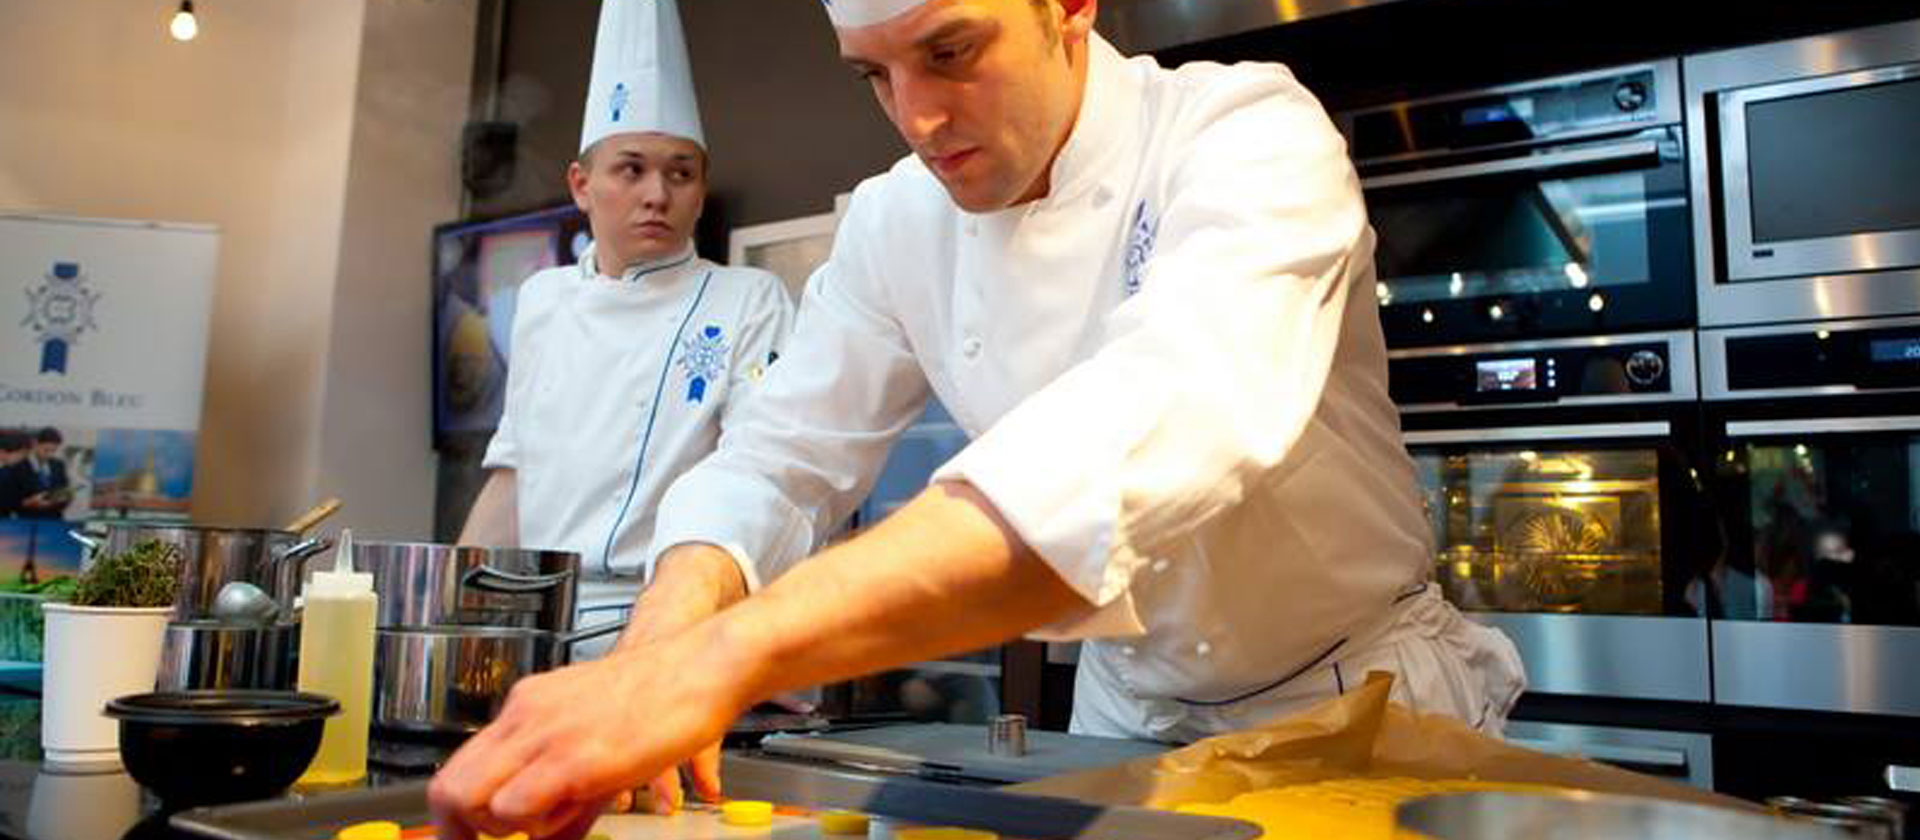 Cuisine Chef david duverger - le cordon bleu london